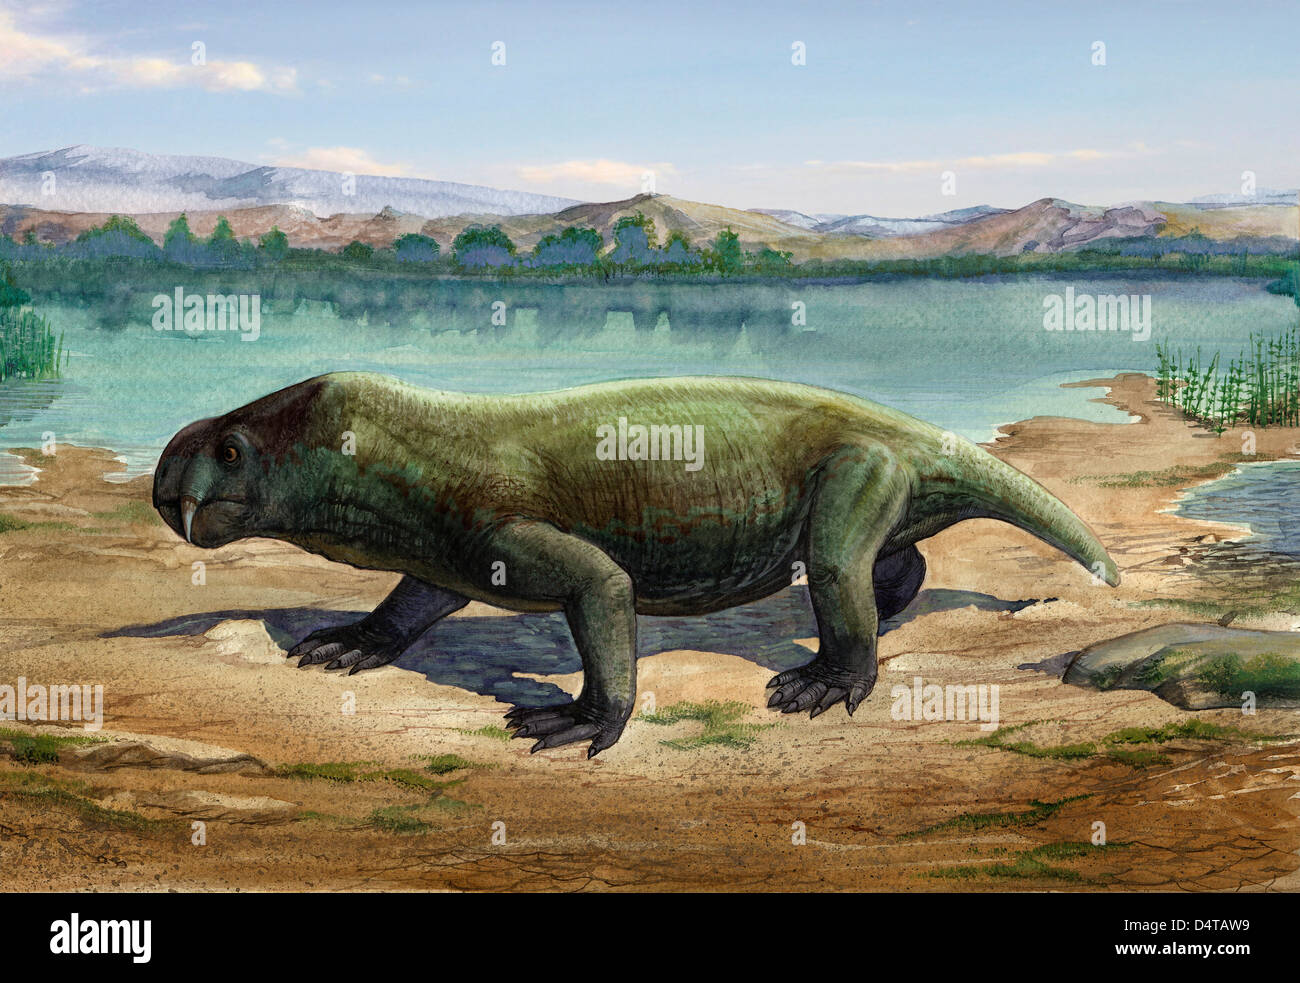 Dicynodon trautscholdi, a prehistoric animal from the Paleozoic Era. - Stock Image